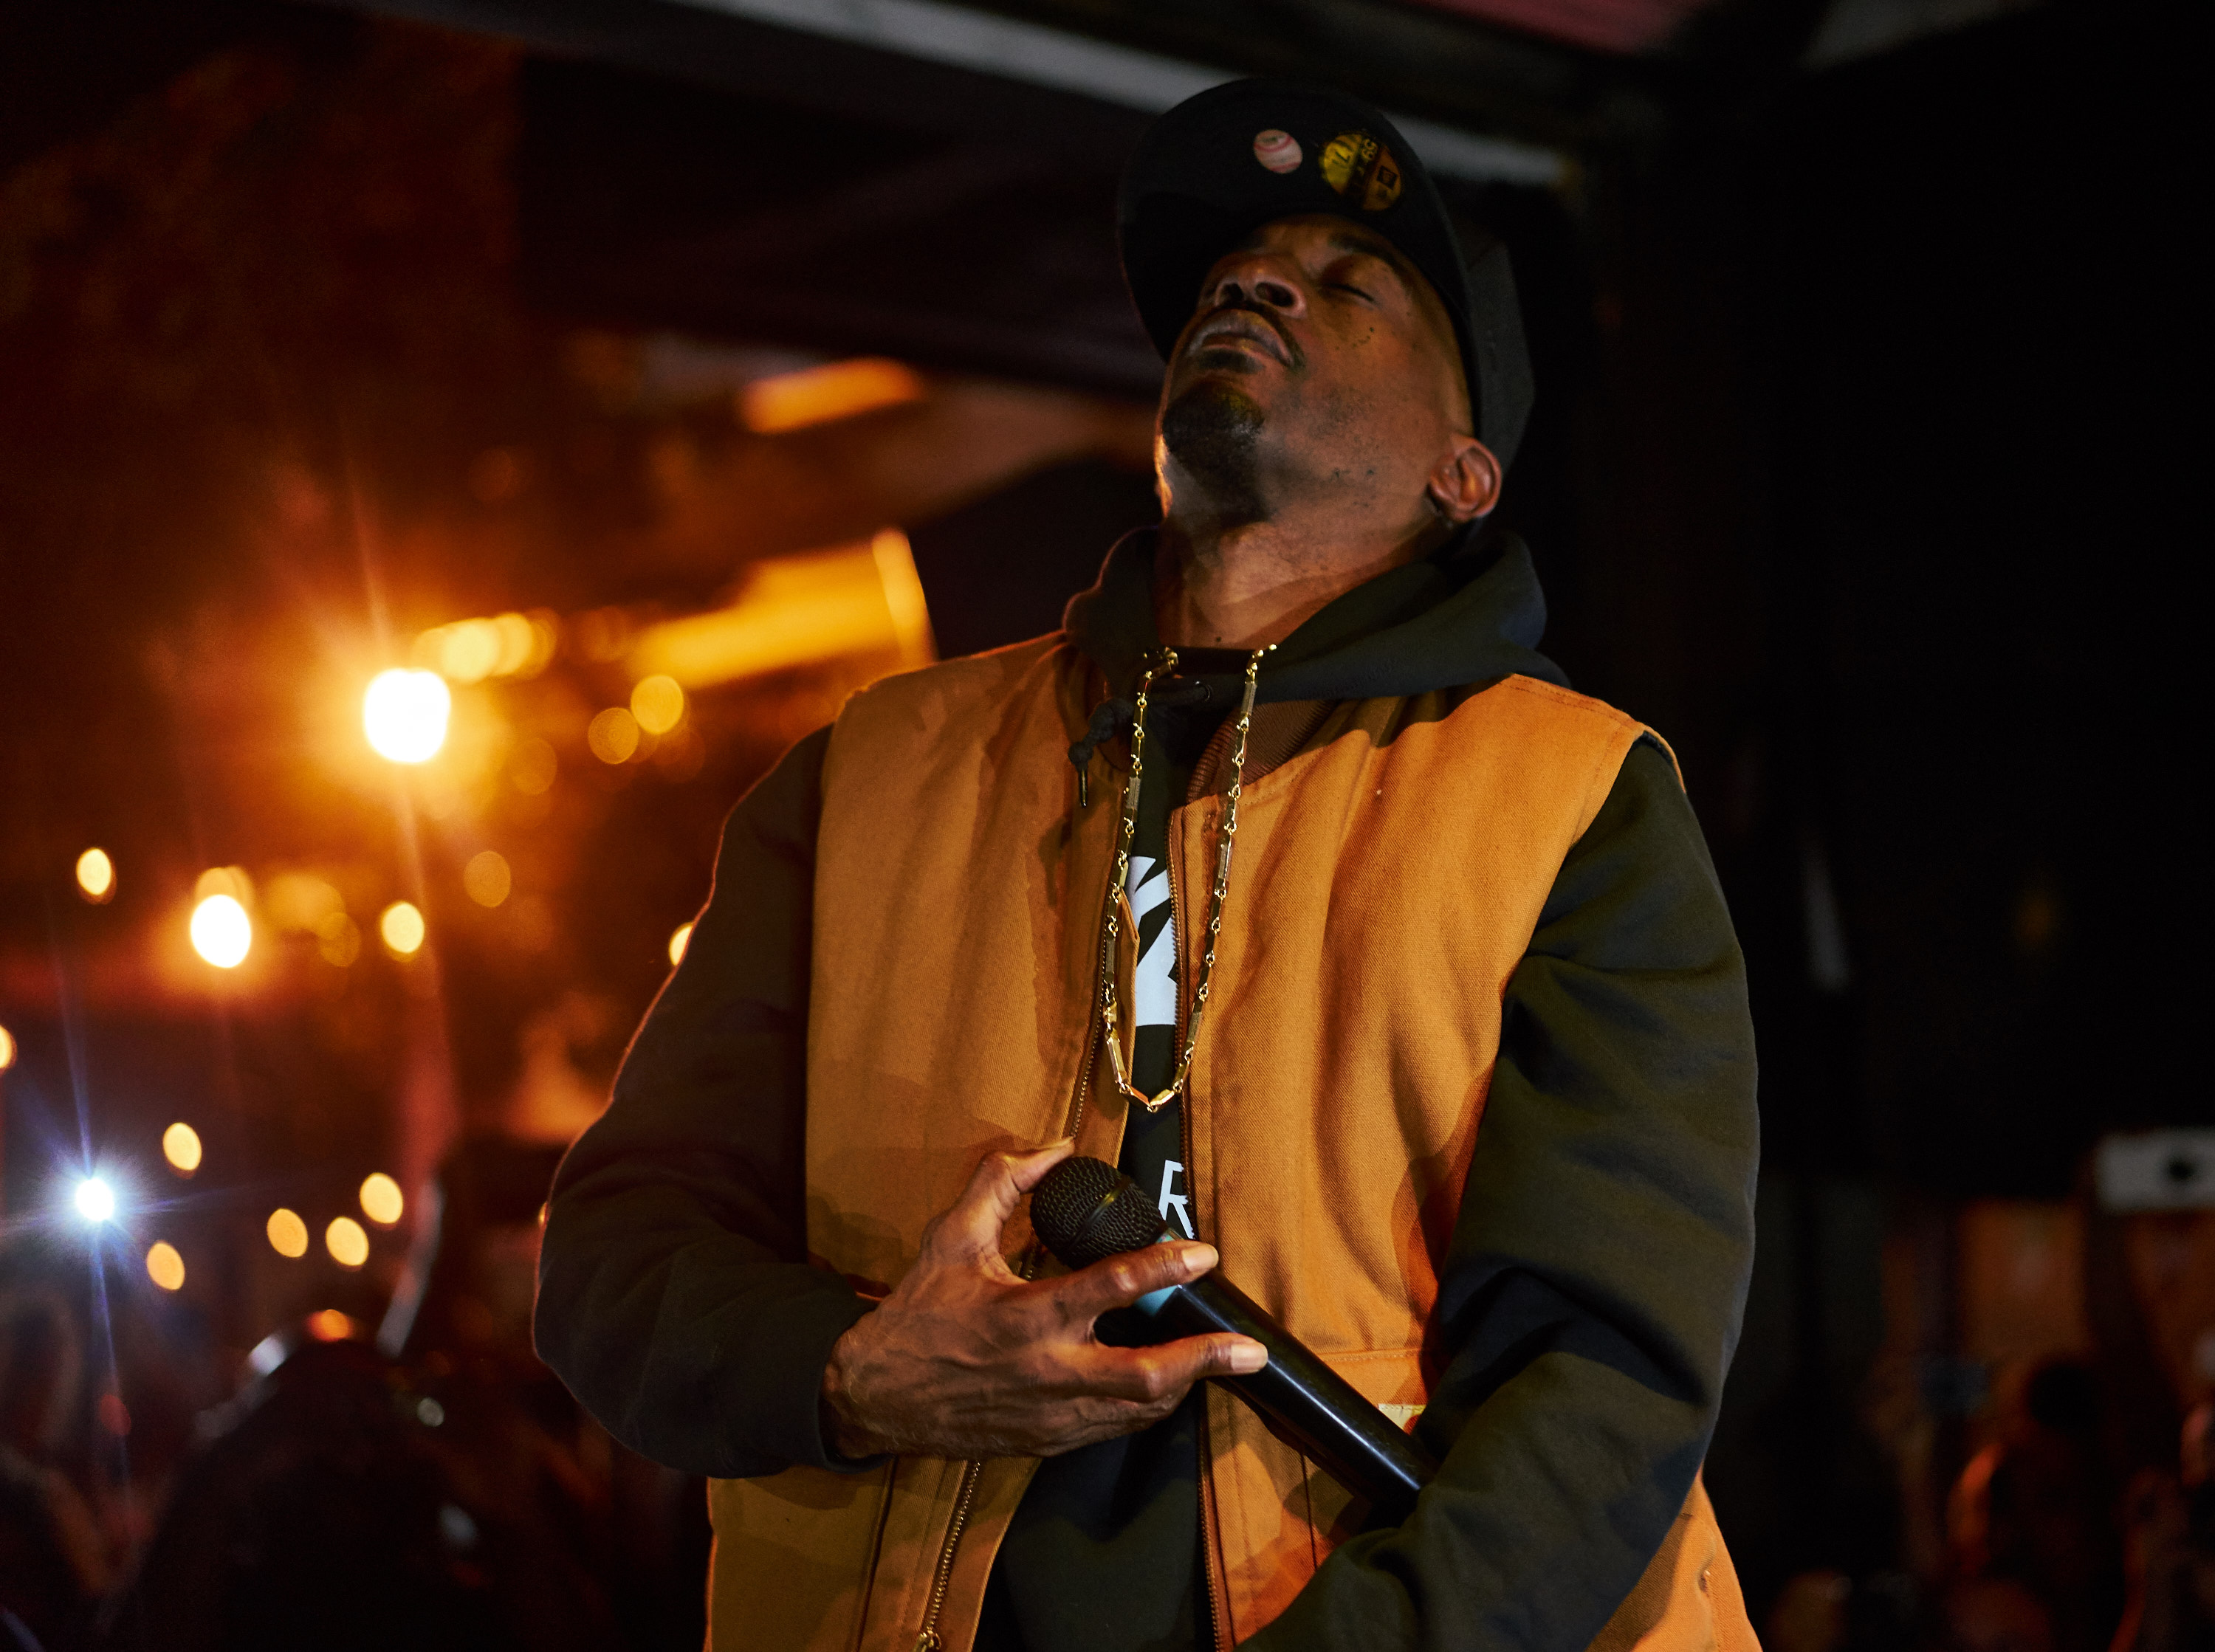 Rakim_sidebar_miami_wordintown_Jayromero_photography_copyright_hip_hop_2